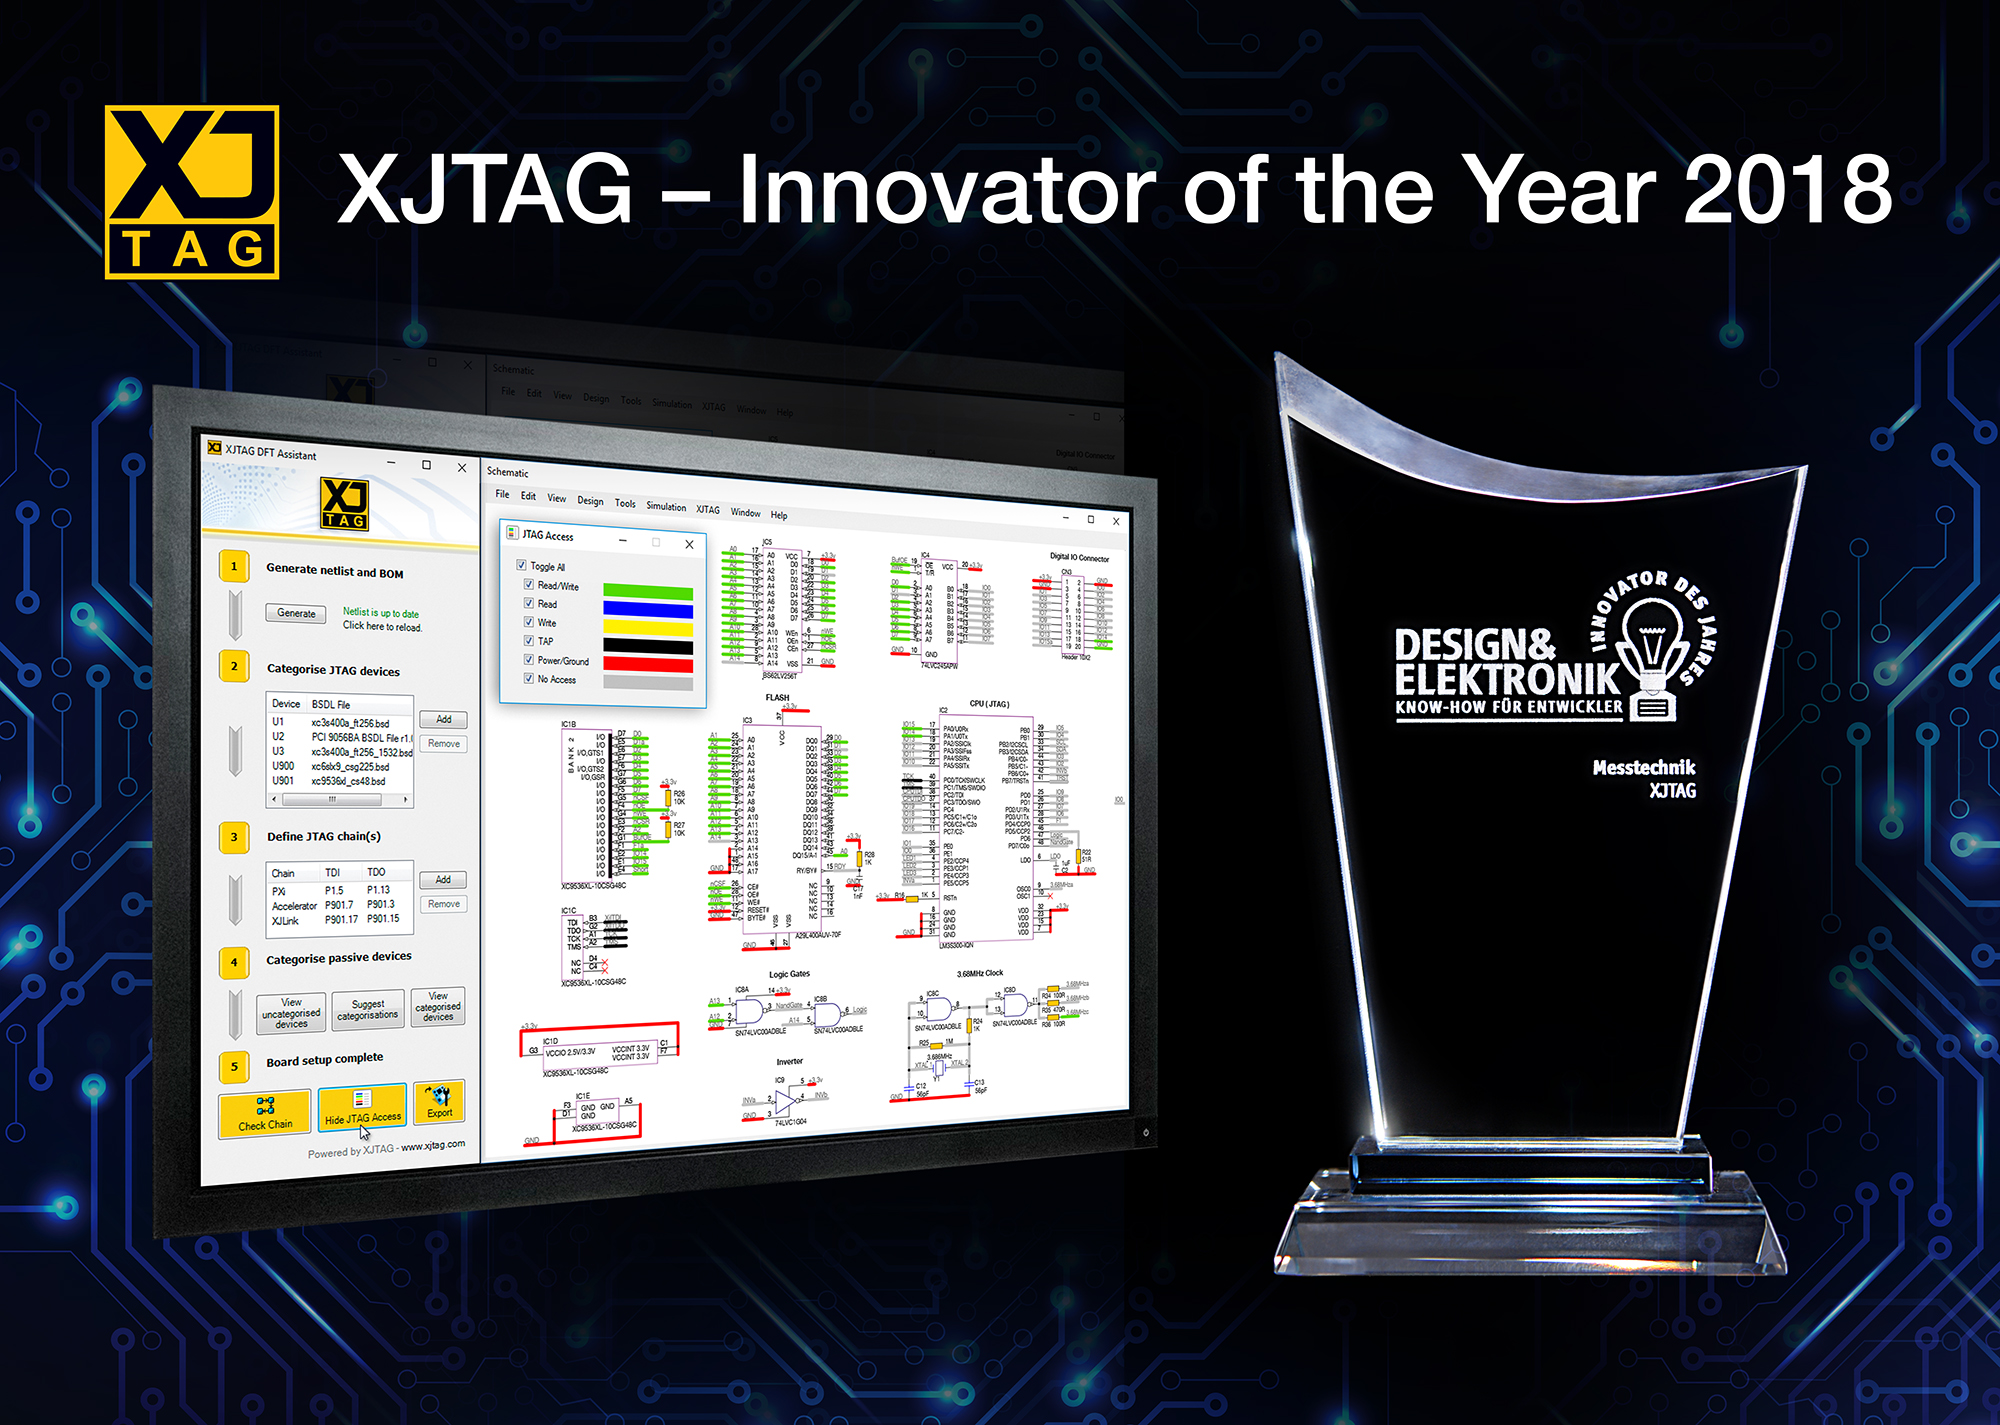 XJTAG Innovator of the Year Award